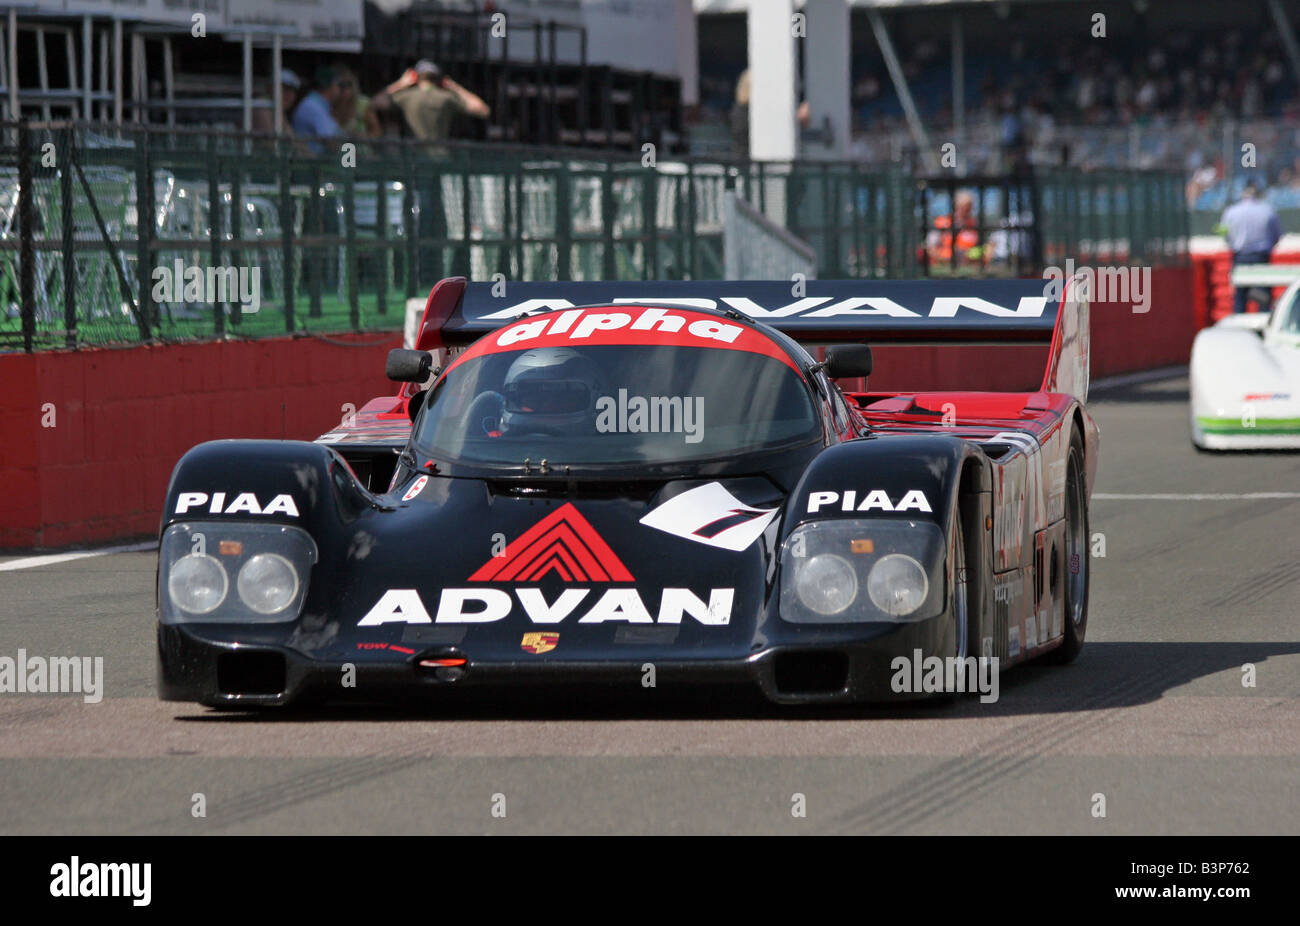 Steven Jones and Roger Green  from UK in No.1 a 1986 Blak/Advan, Porsche 962 coming into the pit lane - Stock Image